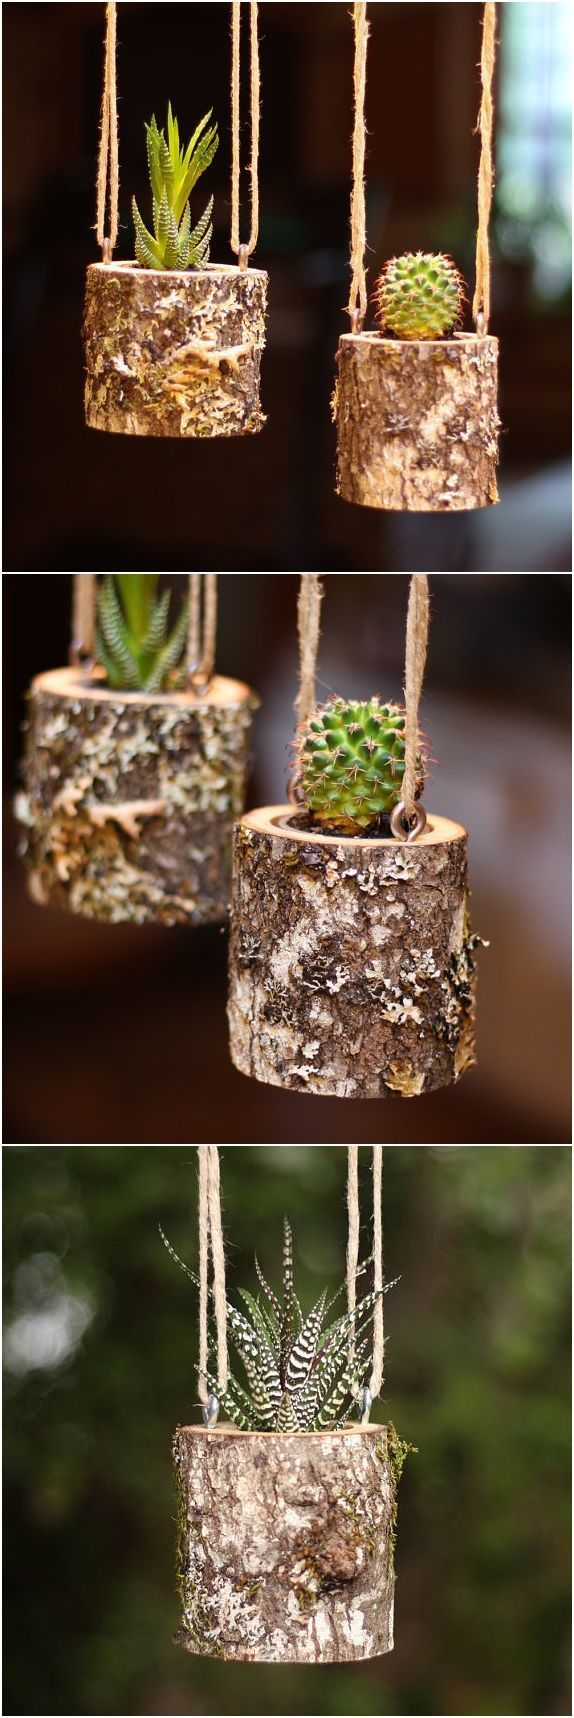 House warming gift planter hanging planter indoor rustic hanging